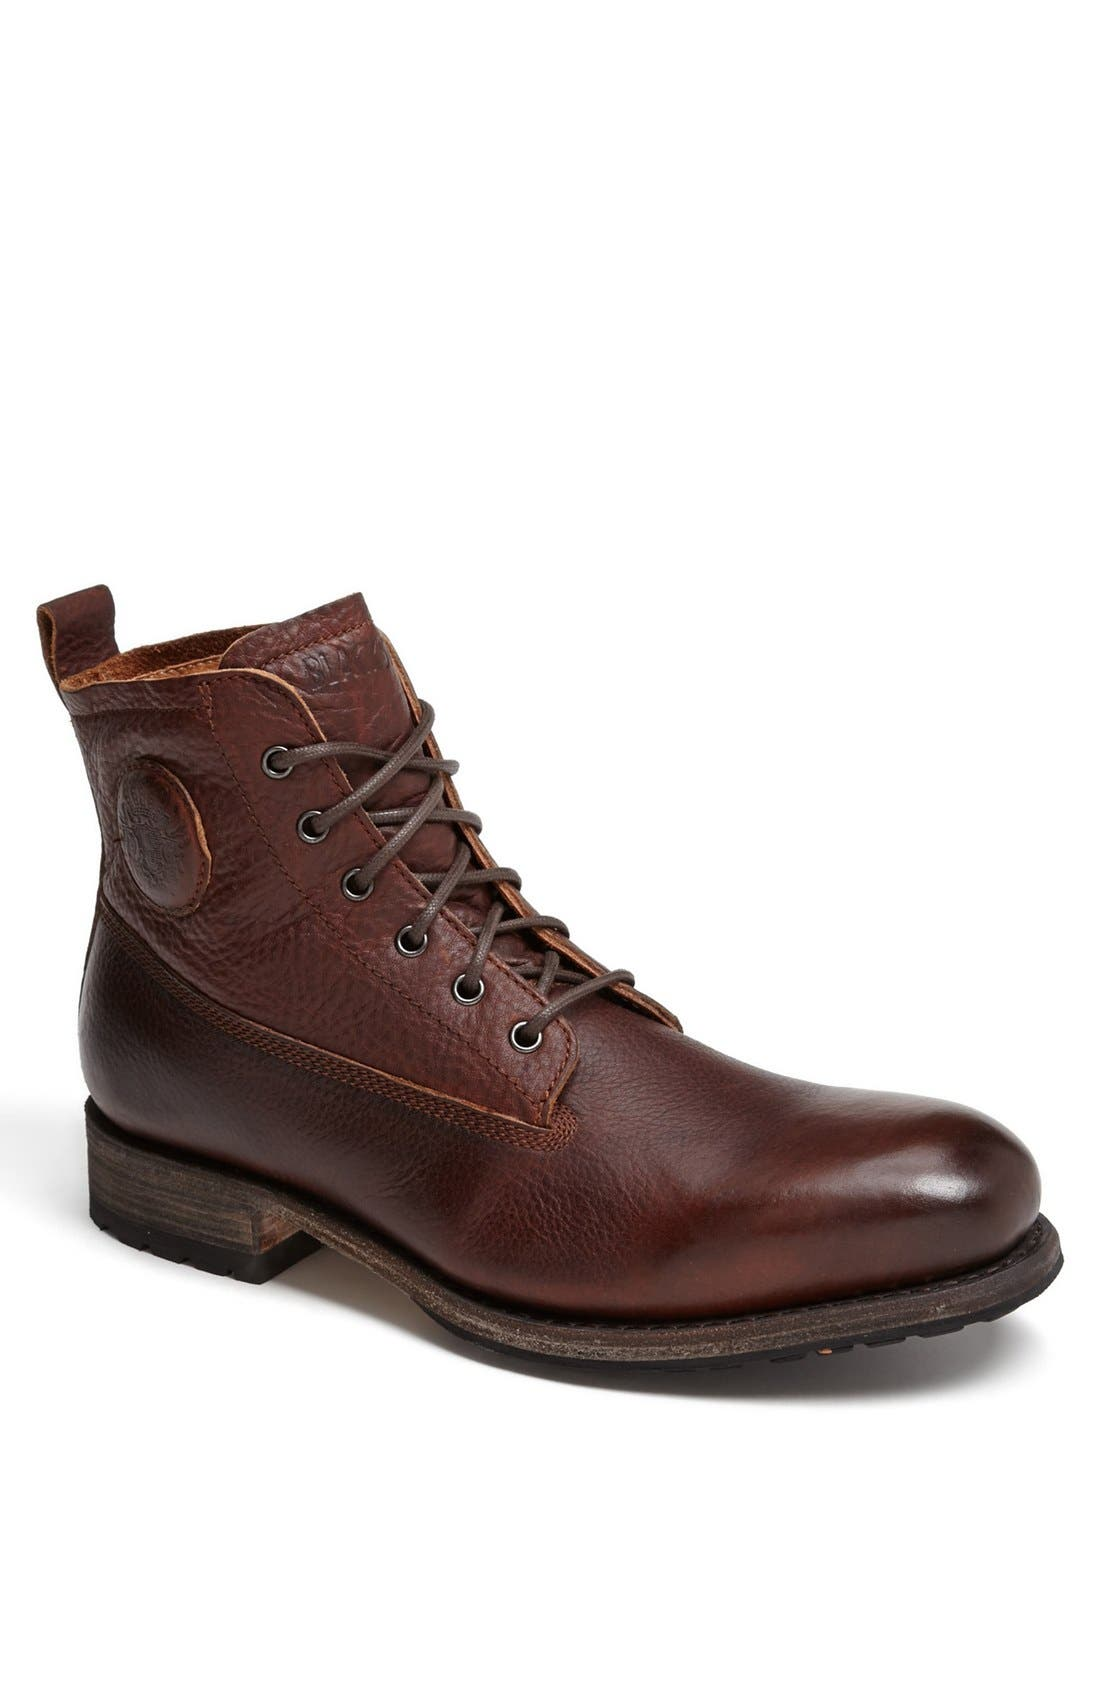 Blackstone 'GM 09' Plain Toe Boot Men